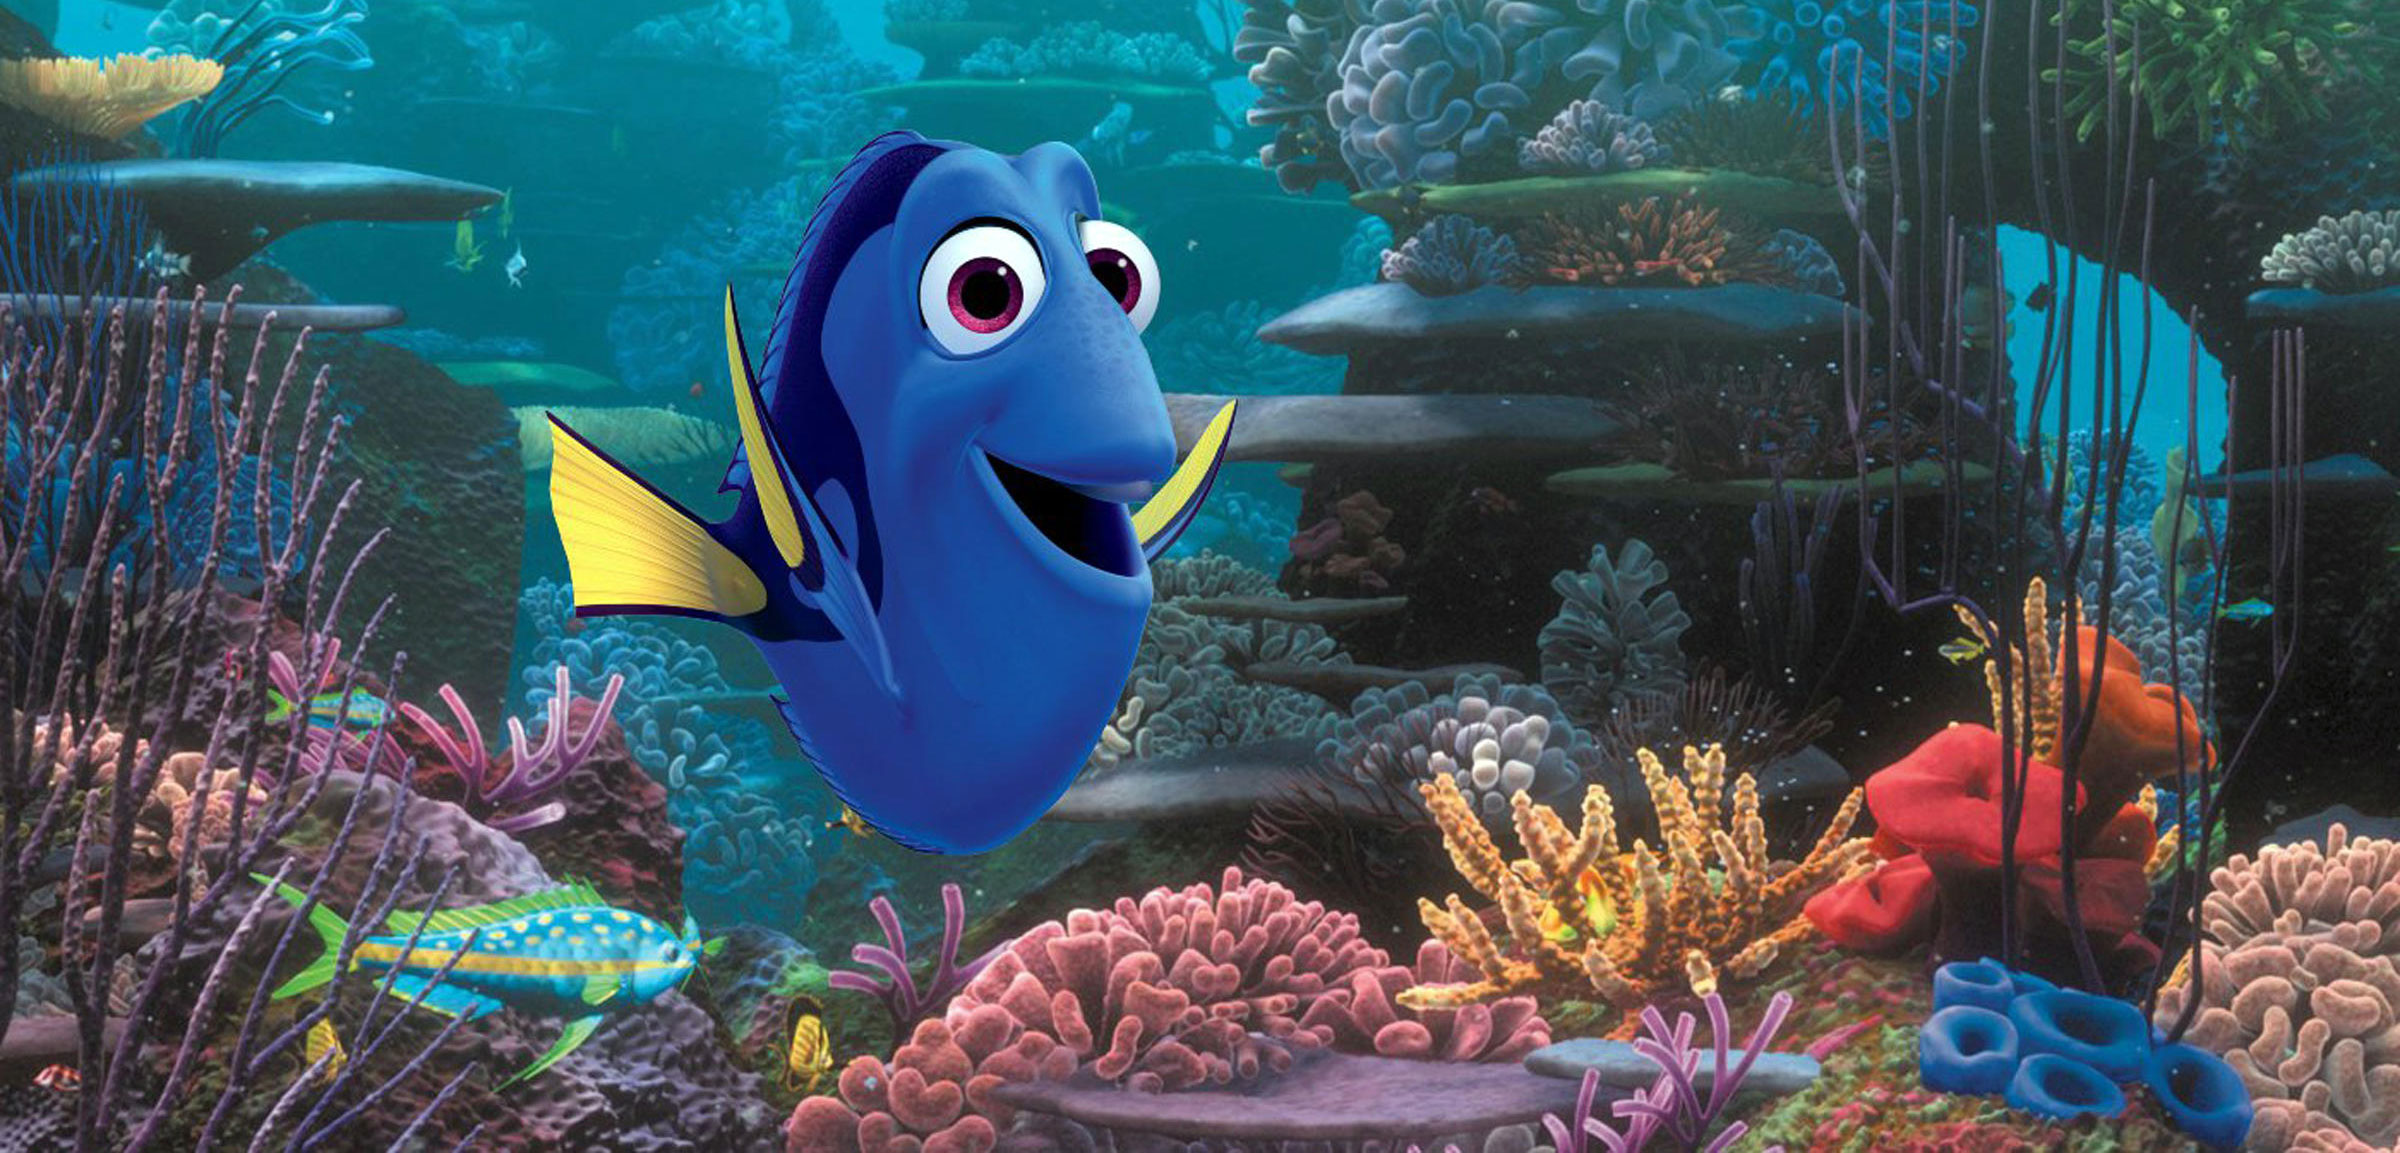 still from the movie Finding Dory